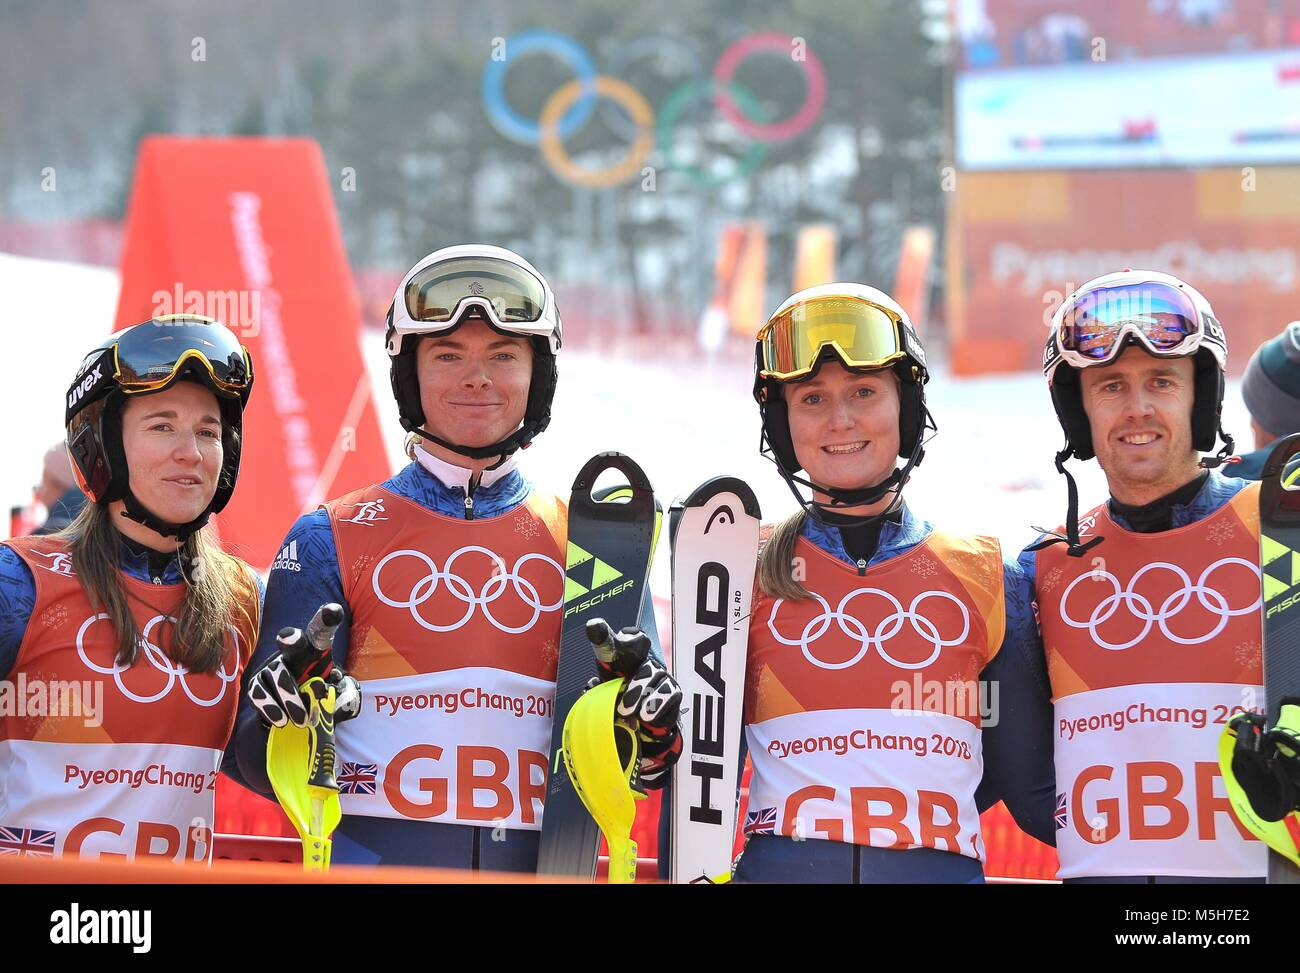 Pyeongchang, South Korea. 24th February, 2018. (l to r) Alex Tilley (GBR), Laurie Taylor (GBR), Charlie Guest (GBR) - Stock Image